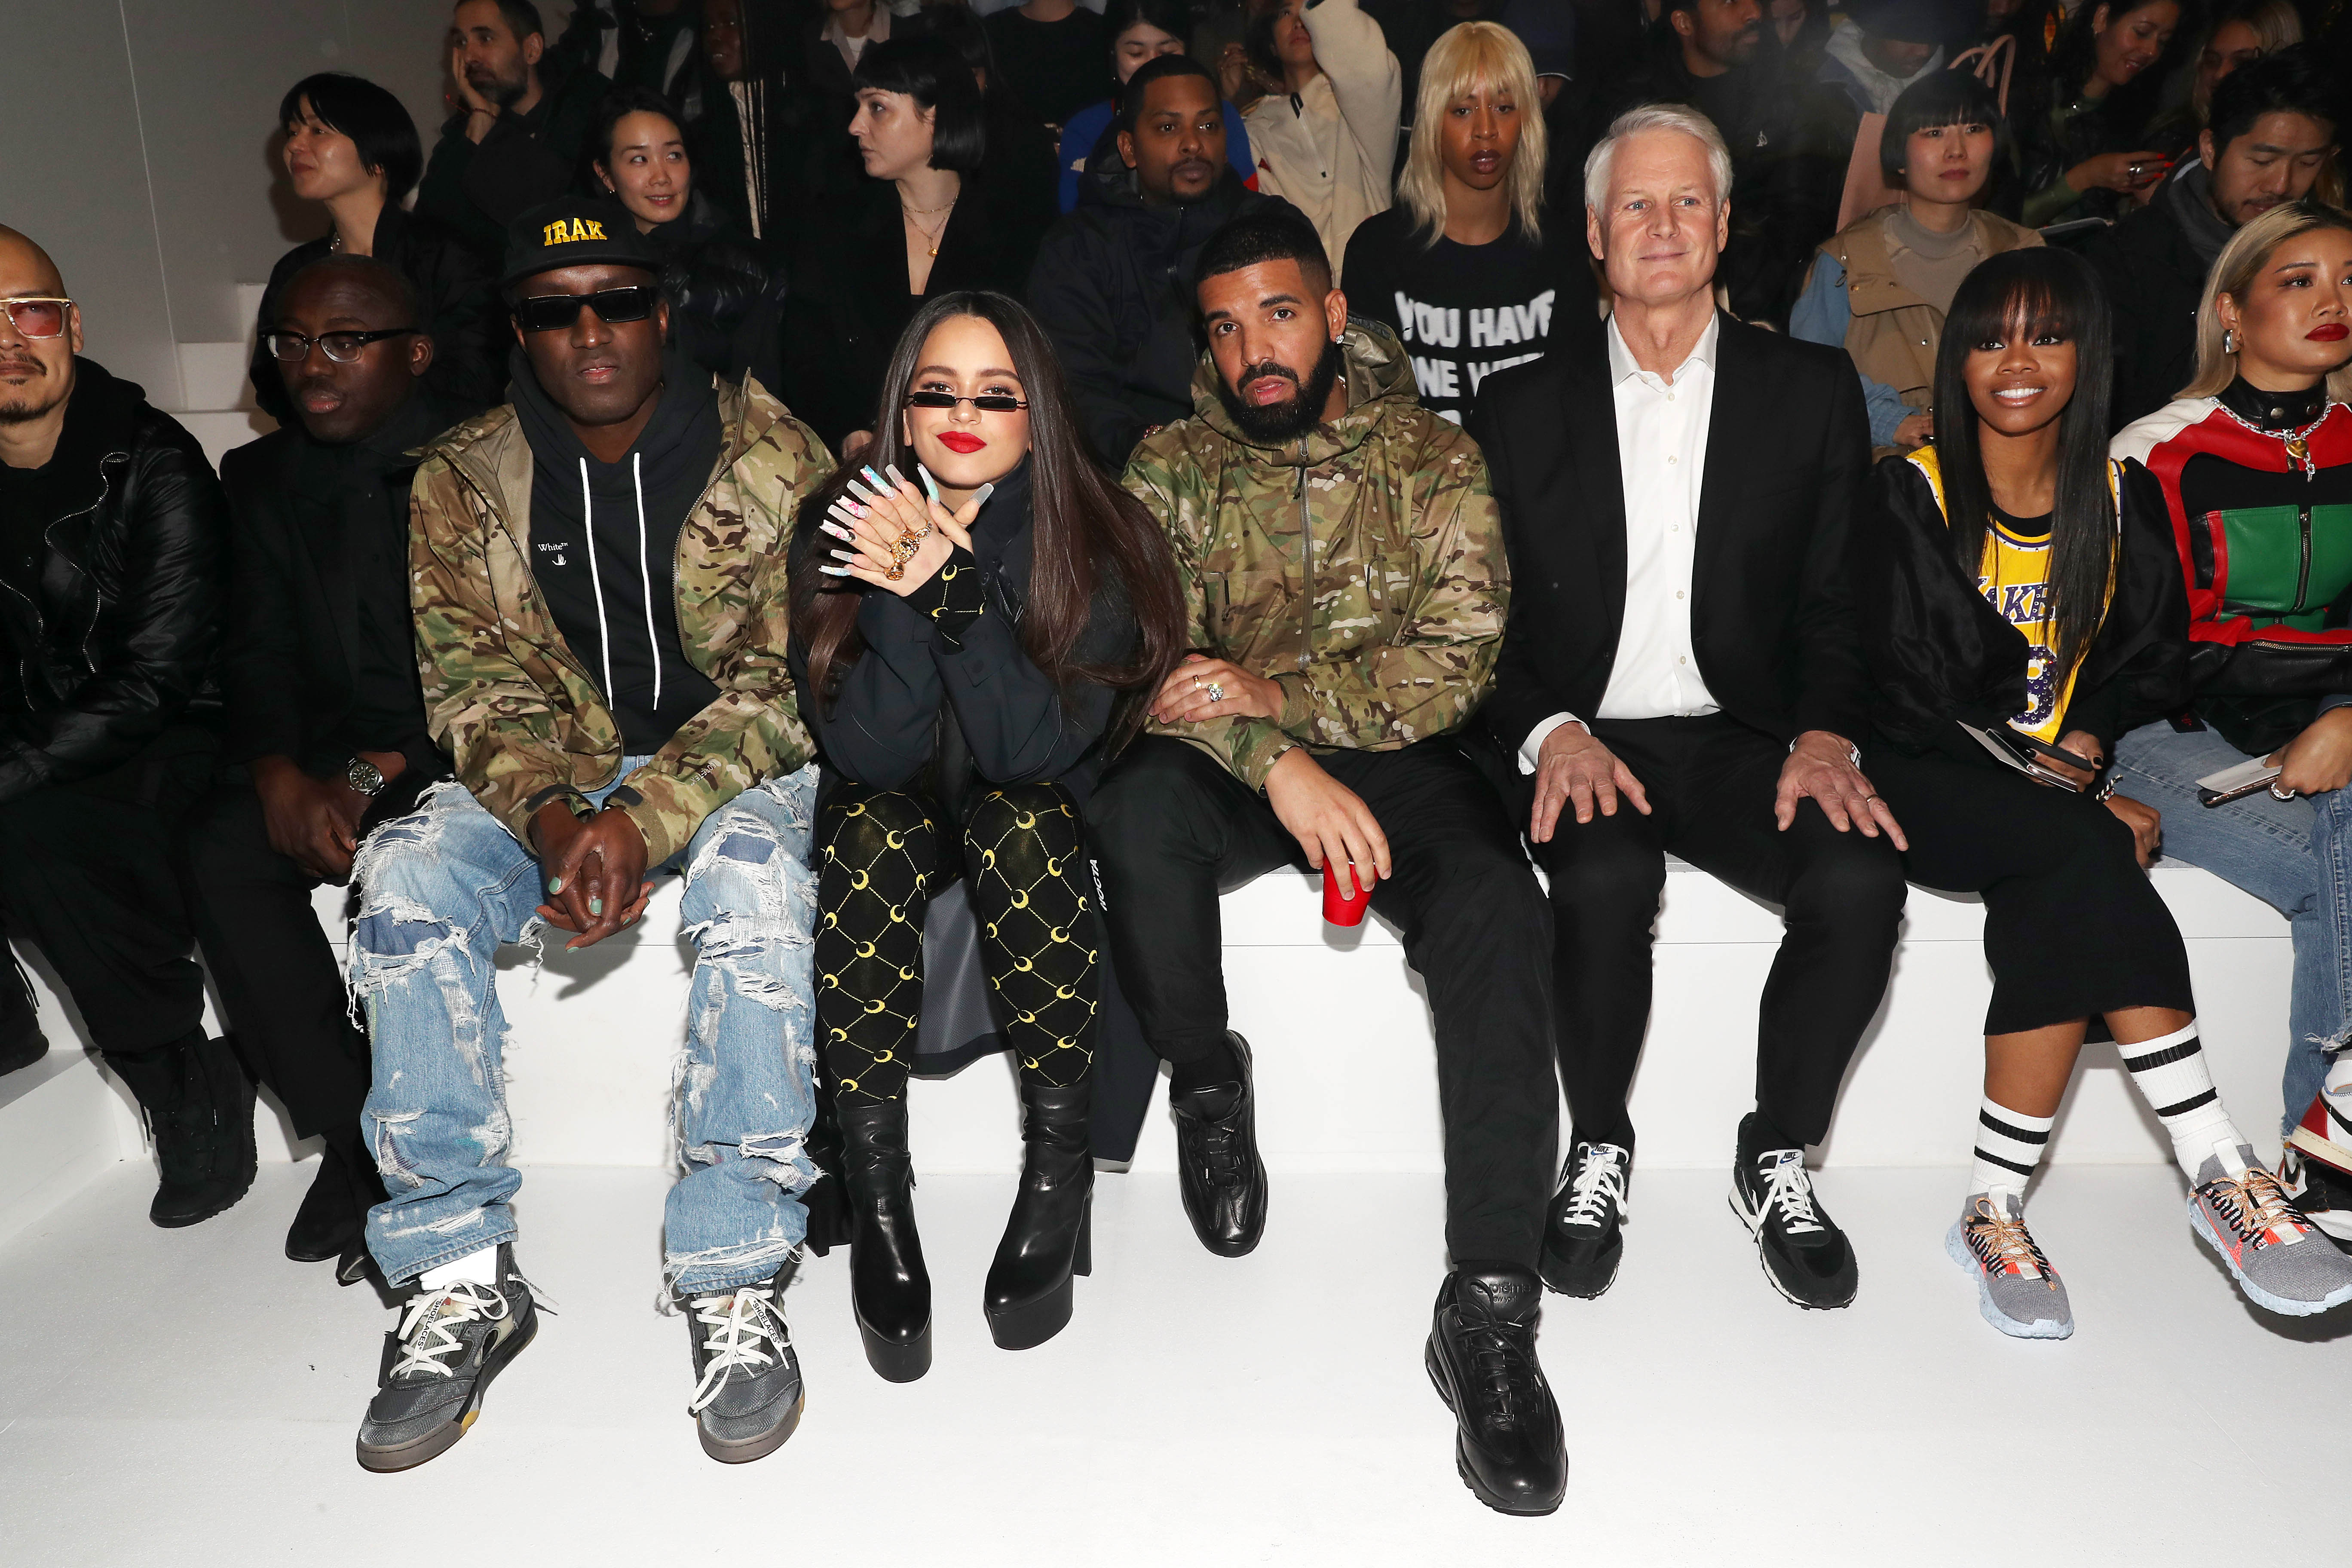 NEW YORK, NEW YORK - FEBRUARY 05:(L - R) Edward Enninful, Virgil Abloh, Rosalia, Drake, John Donahoe and Gabby Douglas attend the 2020 Tokyo Olympic collection fashion show at The Shed on February 05, 2020 in New York City. (Photo by Bennett Raglin/Getty Images)